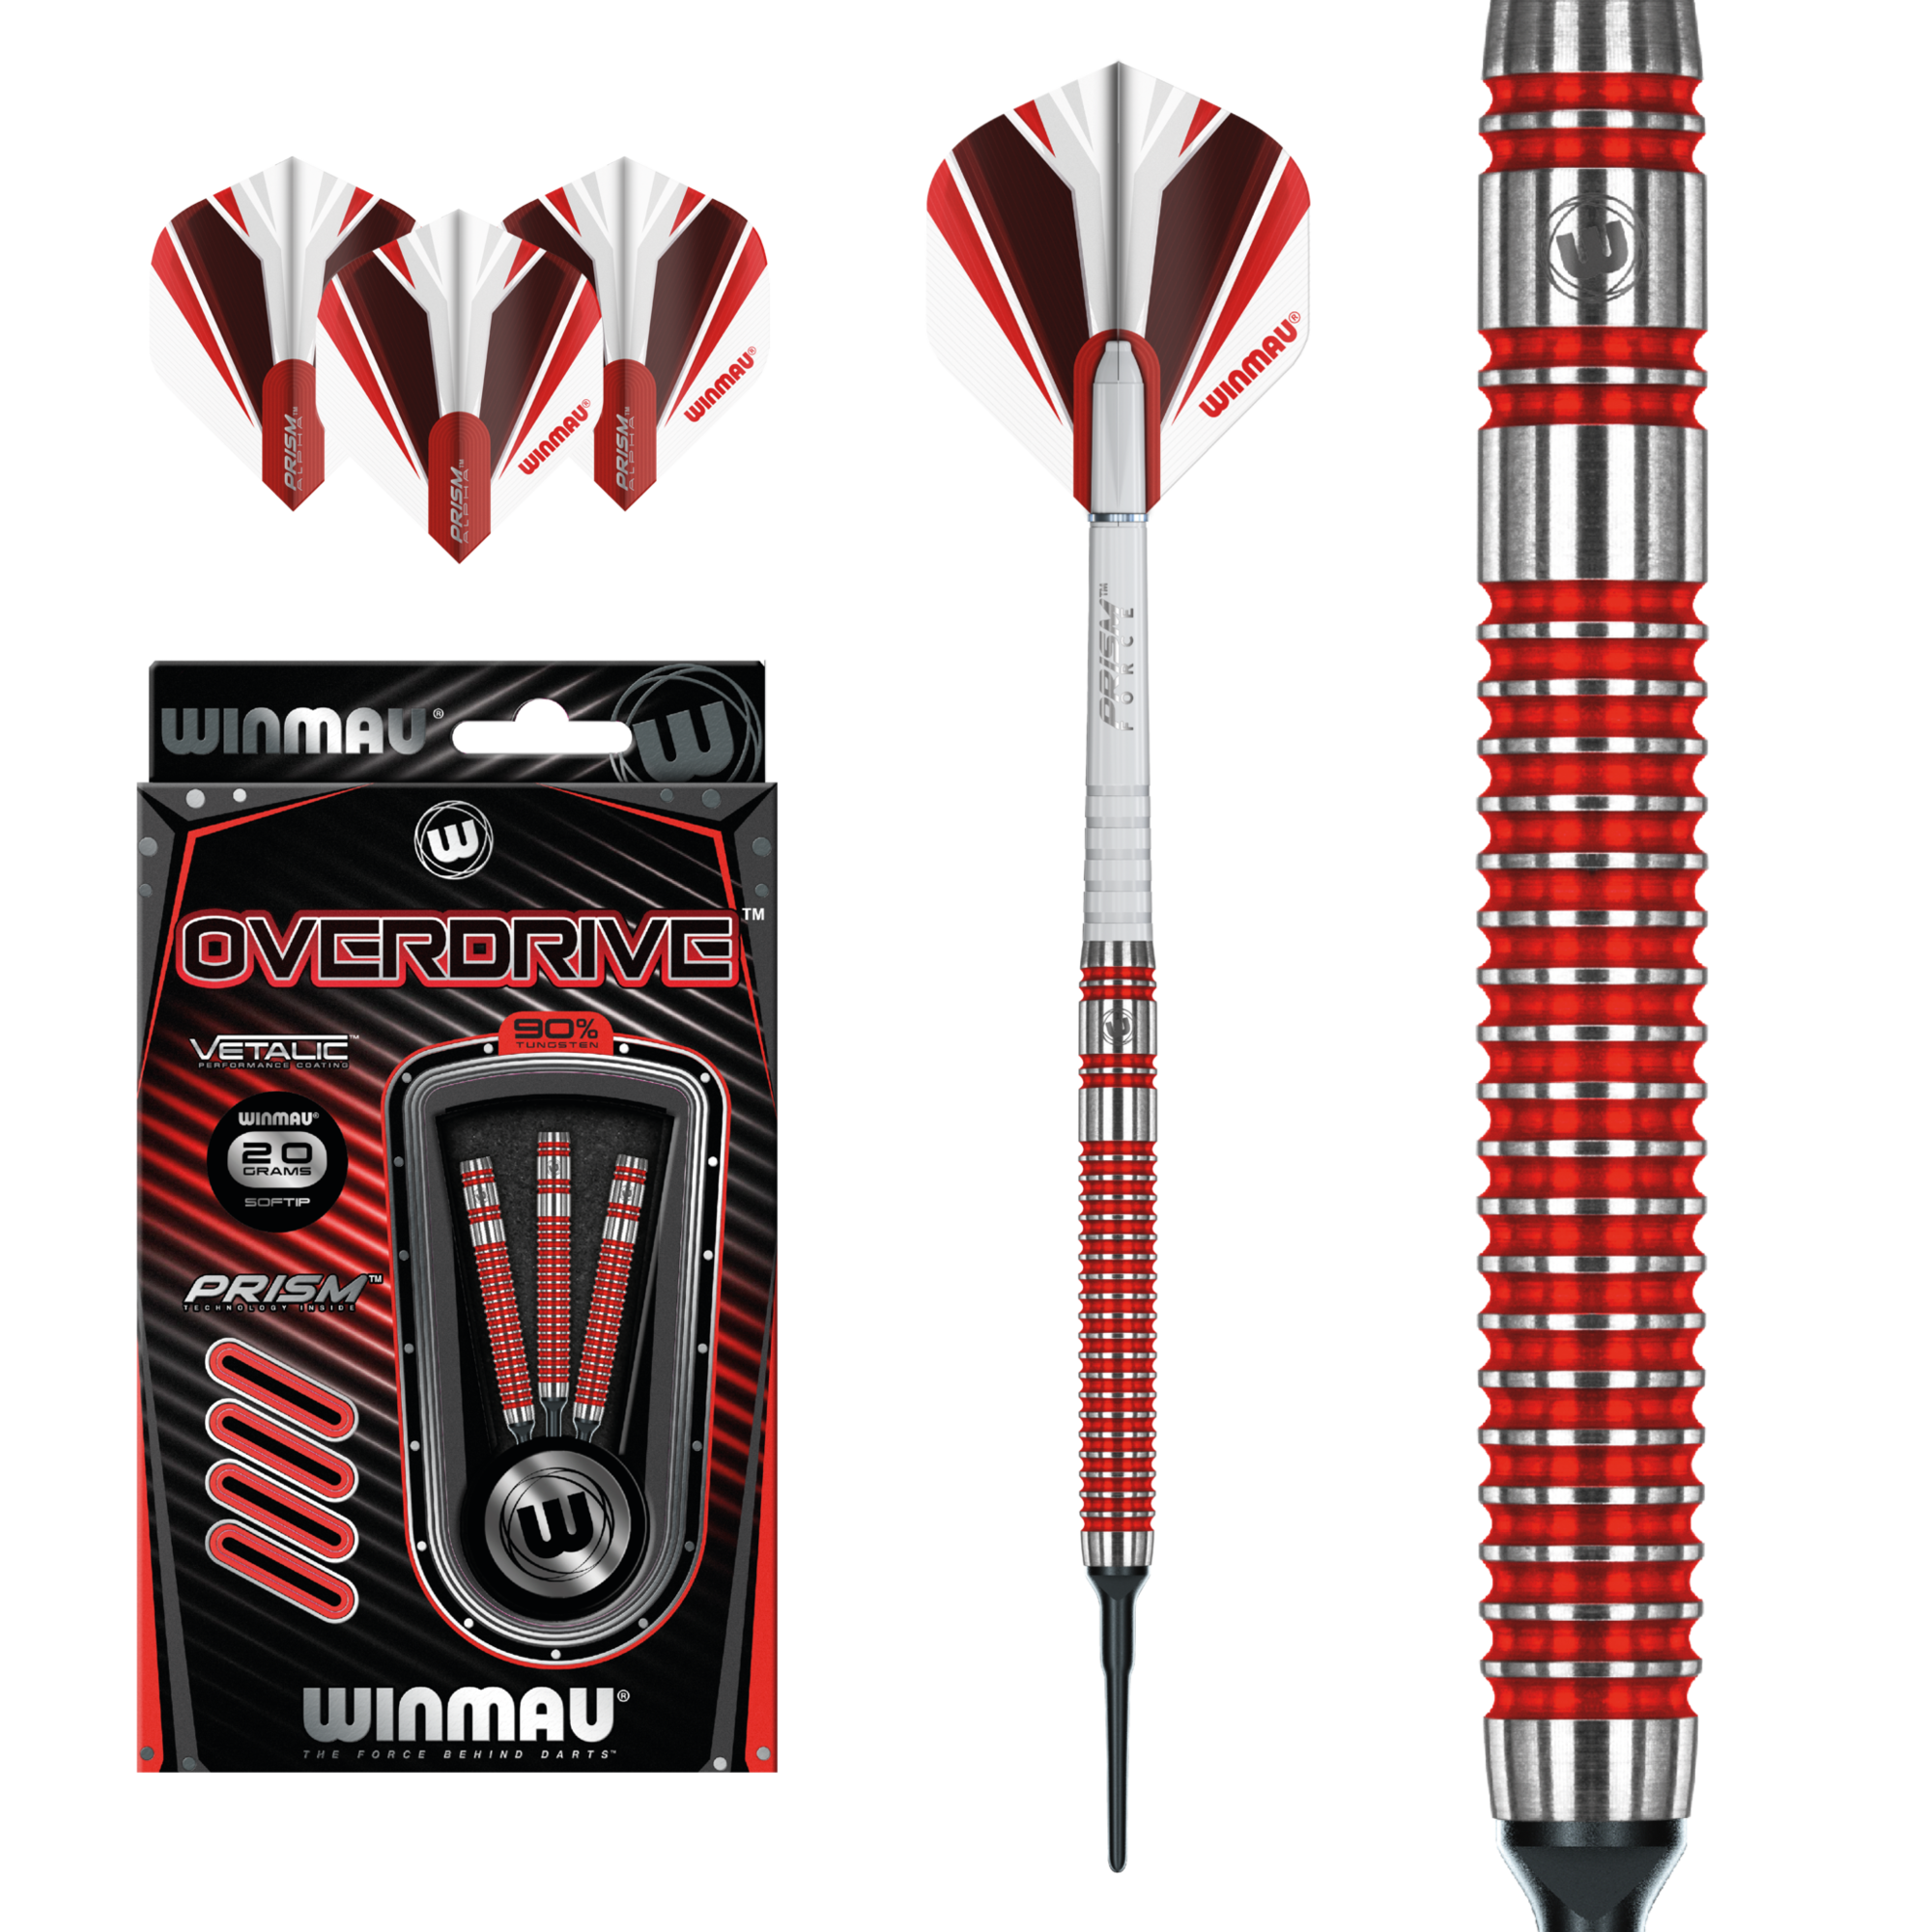 Click here to learn more about the Winmau Overdrive Soft Tip Darts.